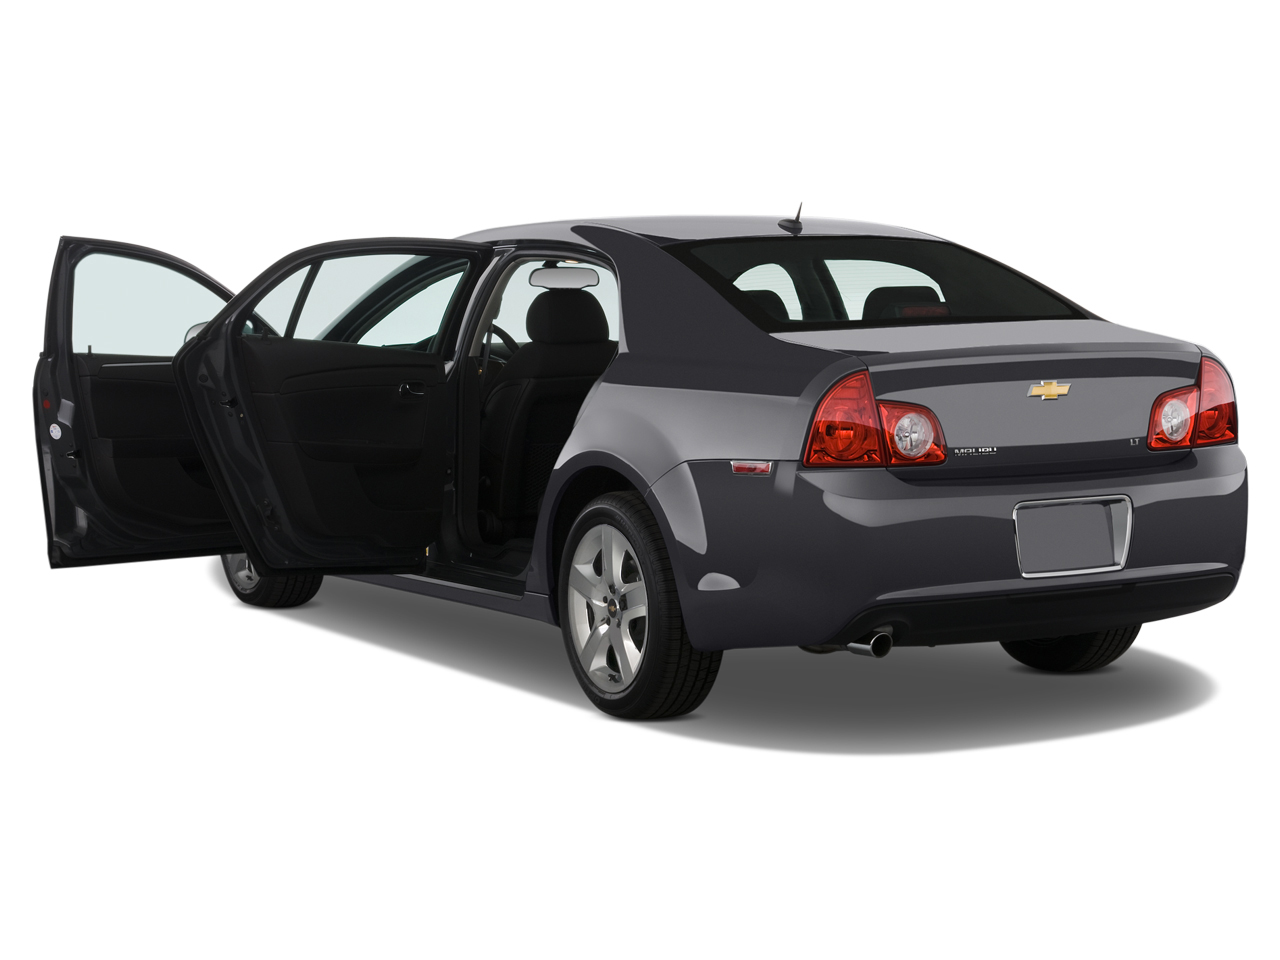 All Star 2008 Chevrolet Malibu News Features And Awards 2007 Aveo Fuel Filter Replacement 39 75